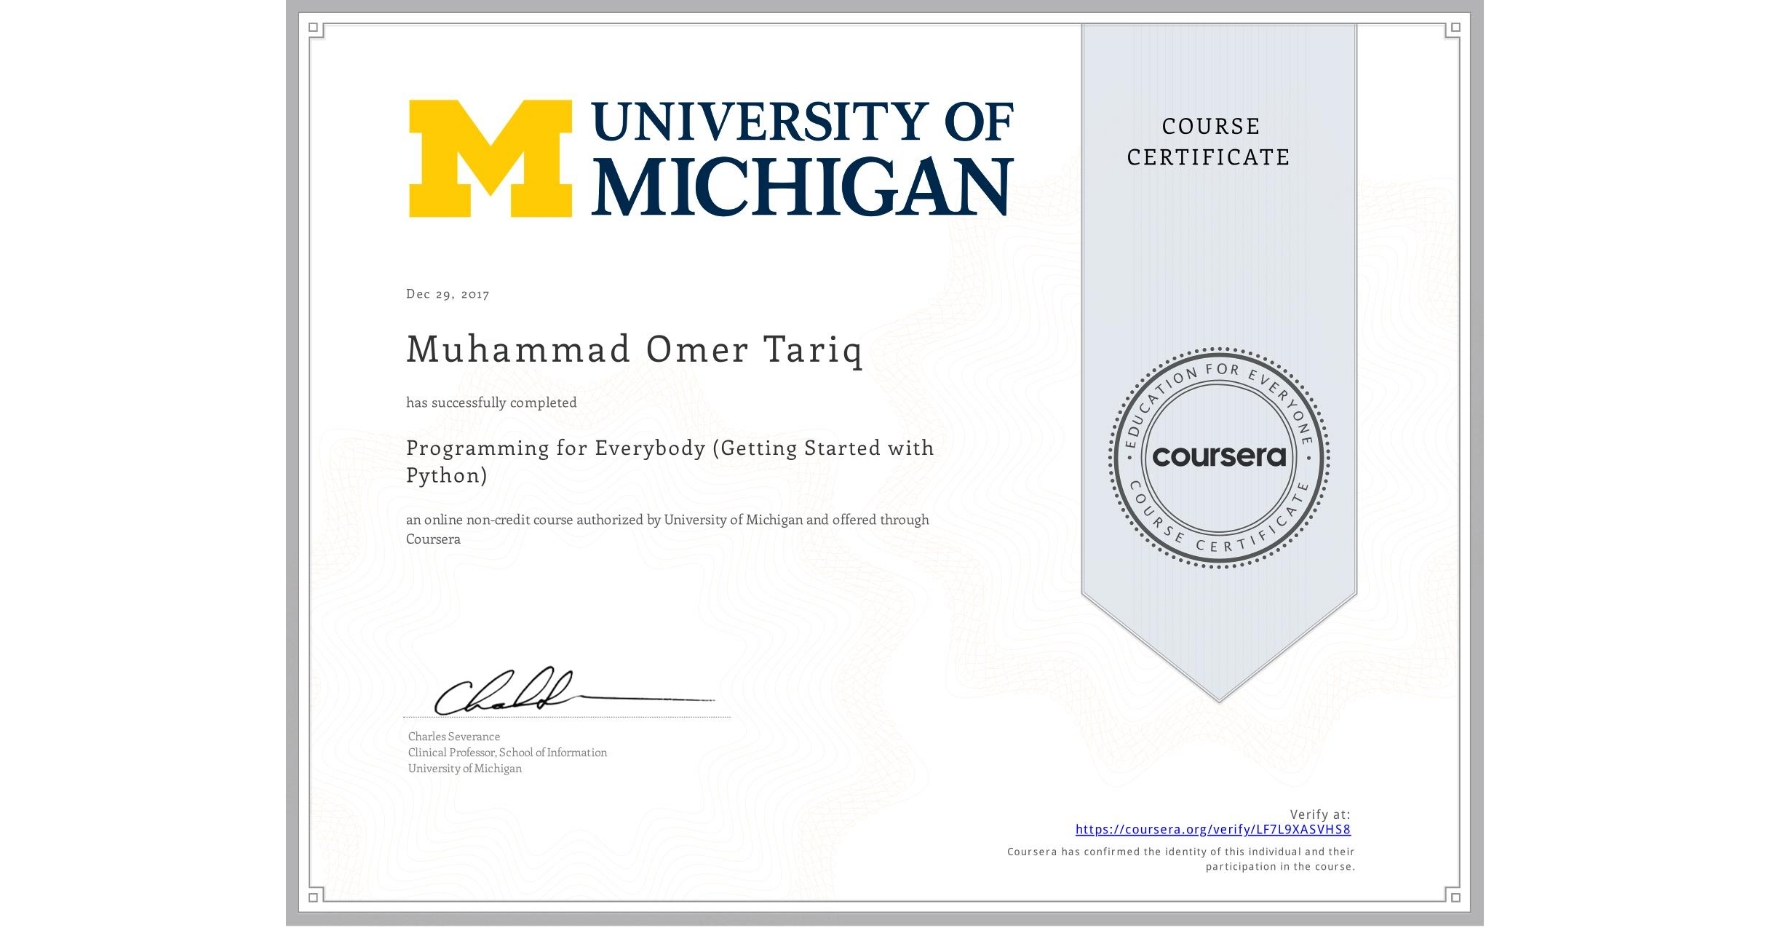 View certificate for Muhammad Omer  Tariq, Programming for Everybody (Getting Started with Python), an online non-credit course authorized by University of Michigan and offered through Coursera